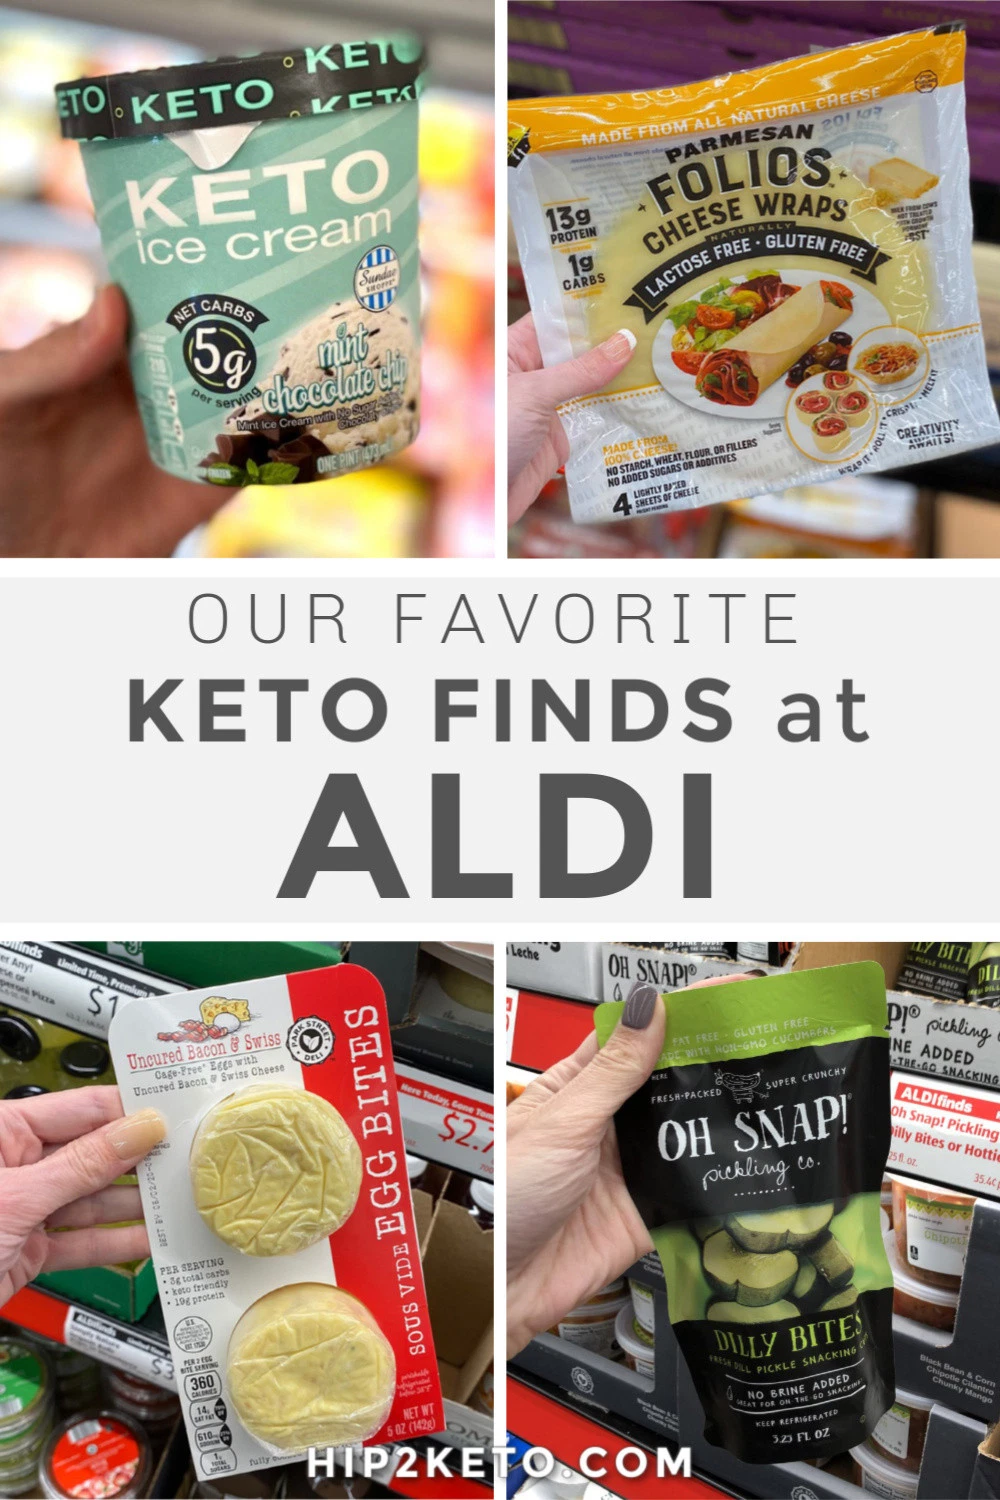 Aldi Has Been Winning Me Over Lately The Convenience Of Their Store Layout Their Awesome Exclusive Bran In 2020 Keto Diet Food List Keto Food List Keto Recipes Easy